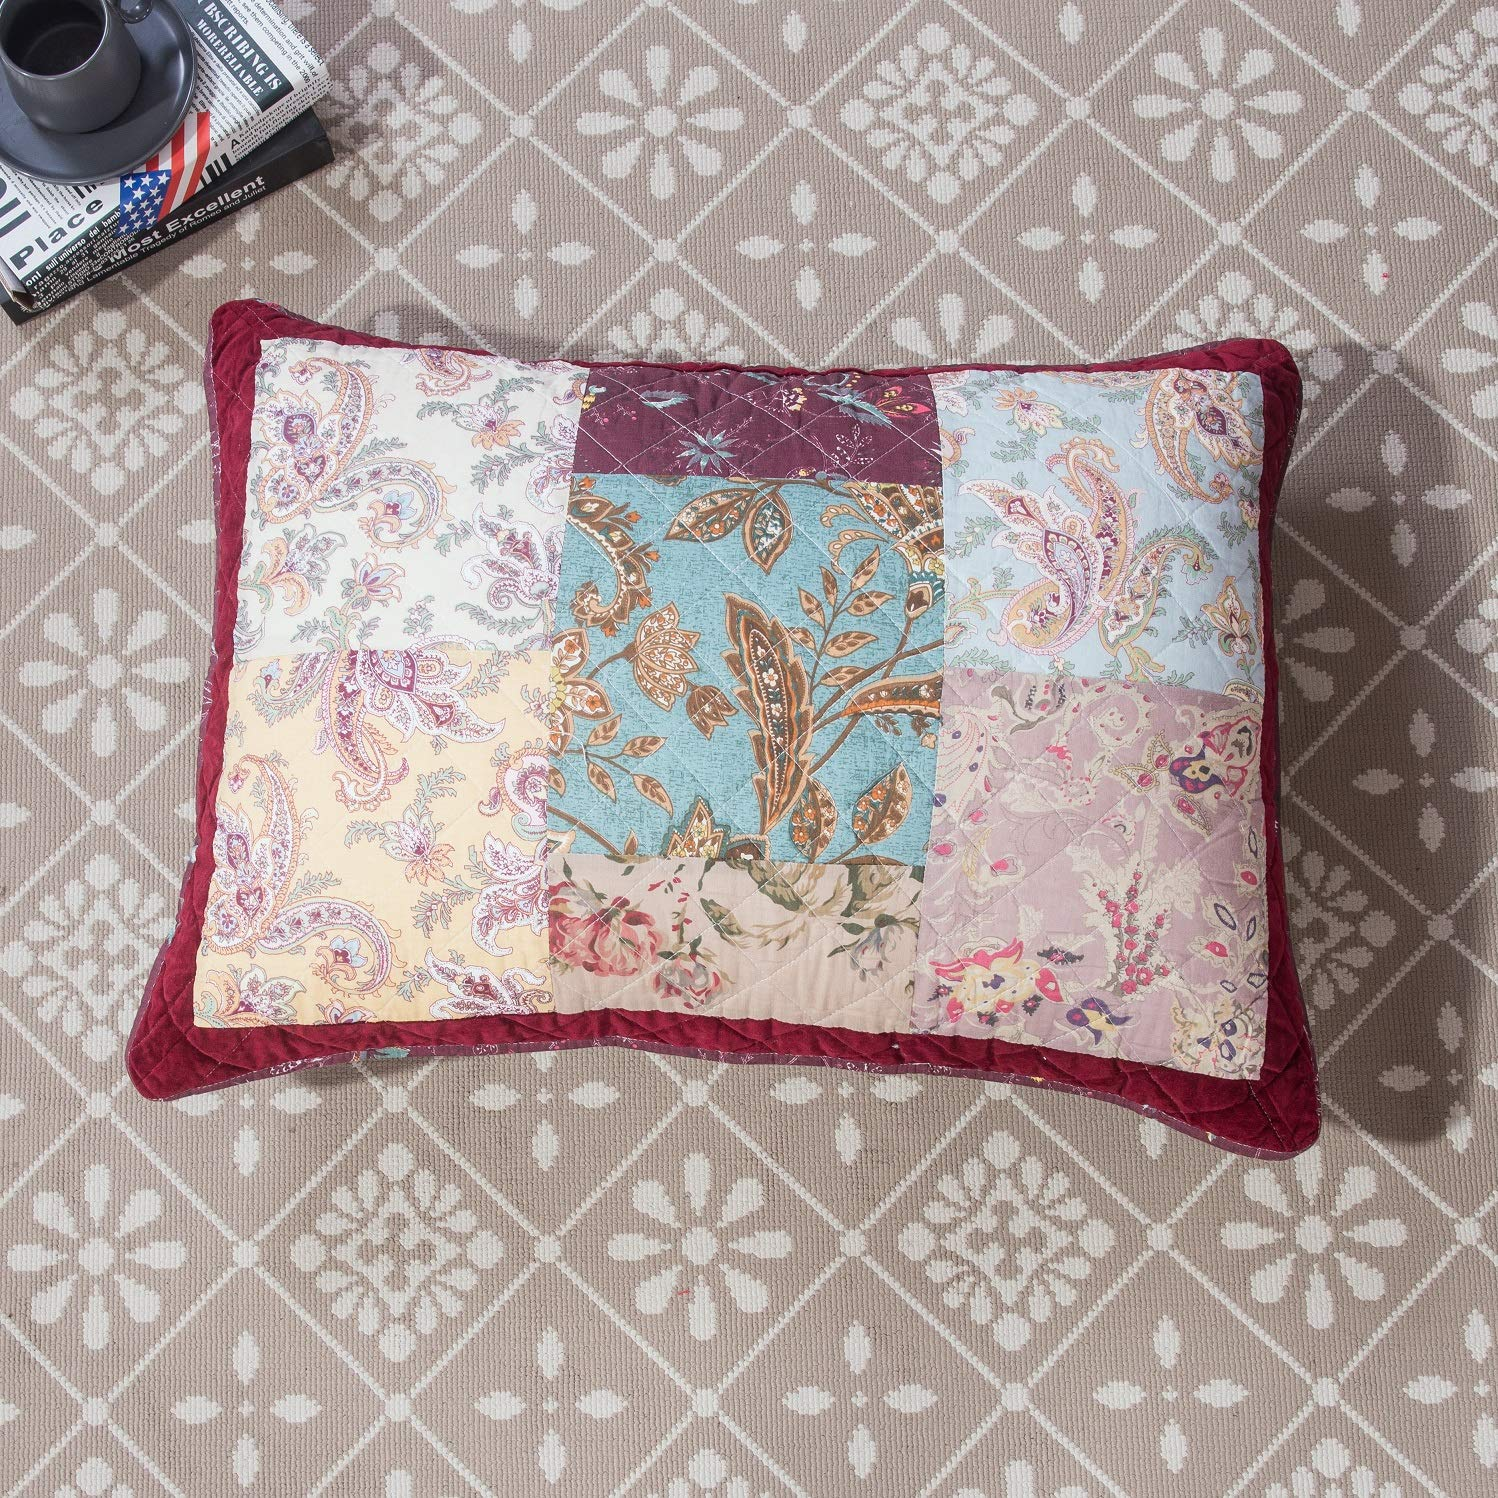 DaDa Bedding Bohemian Patchwork Bedspread - Burgundy Wine Velvety Trim - Vintage Floral Roses Paisley - Bright Vibrant Multi-Colorful Quilted Set - Queen - 3-Pieces by DaDa Bedding Collection (Image #7)